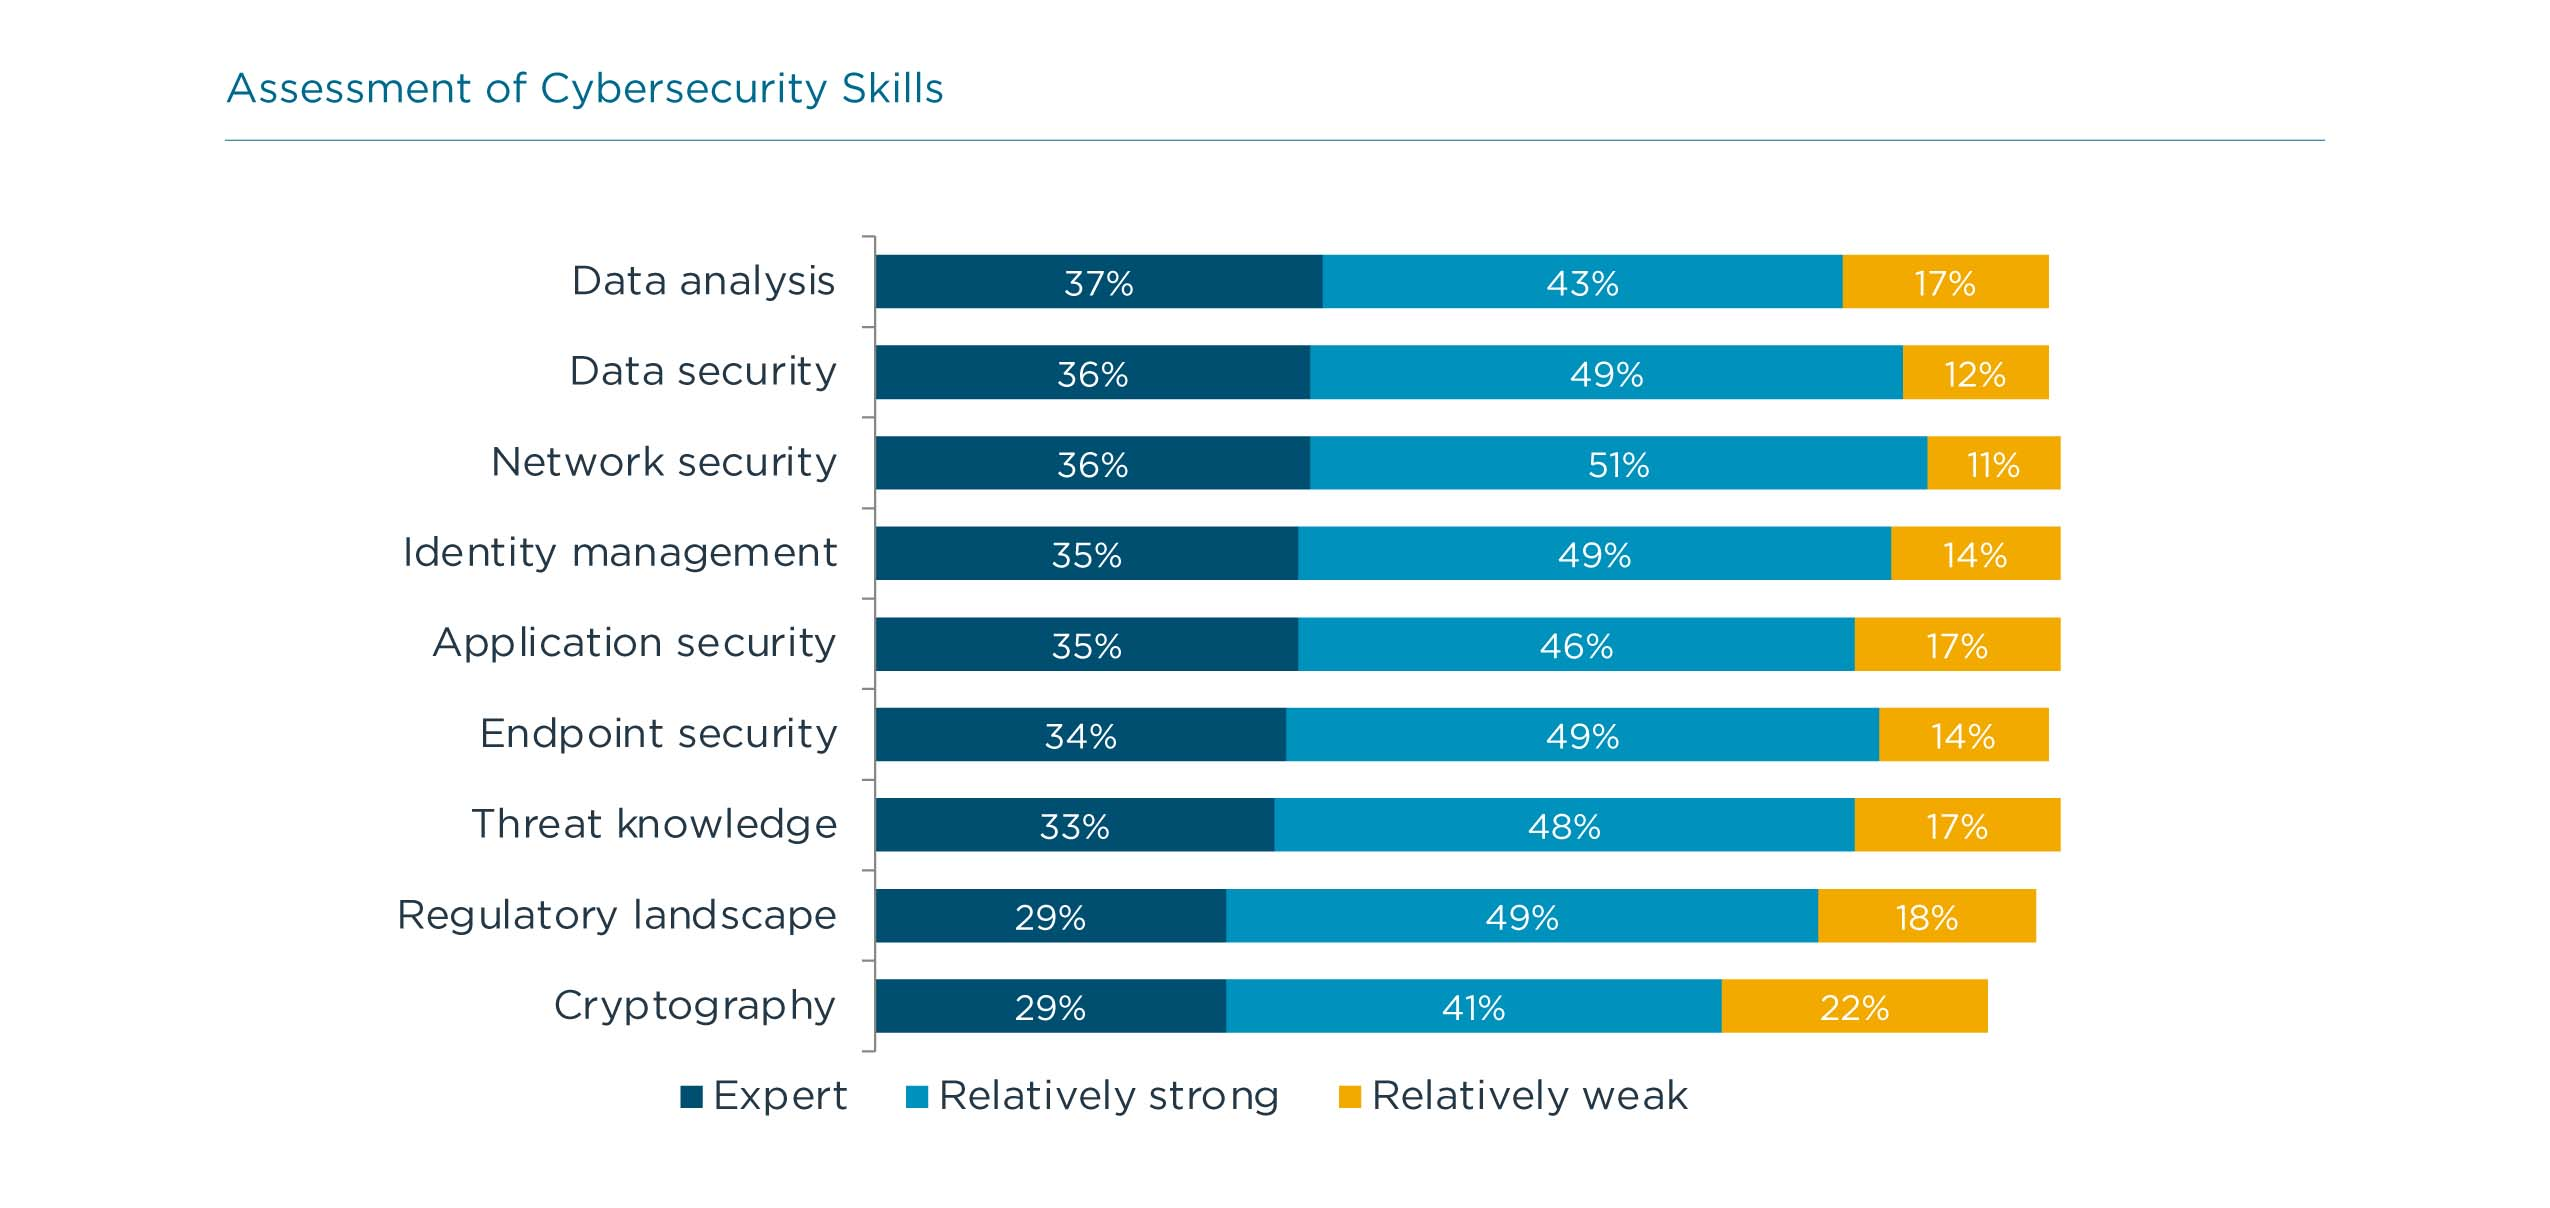 Assessment of Cybersecurity Skills